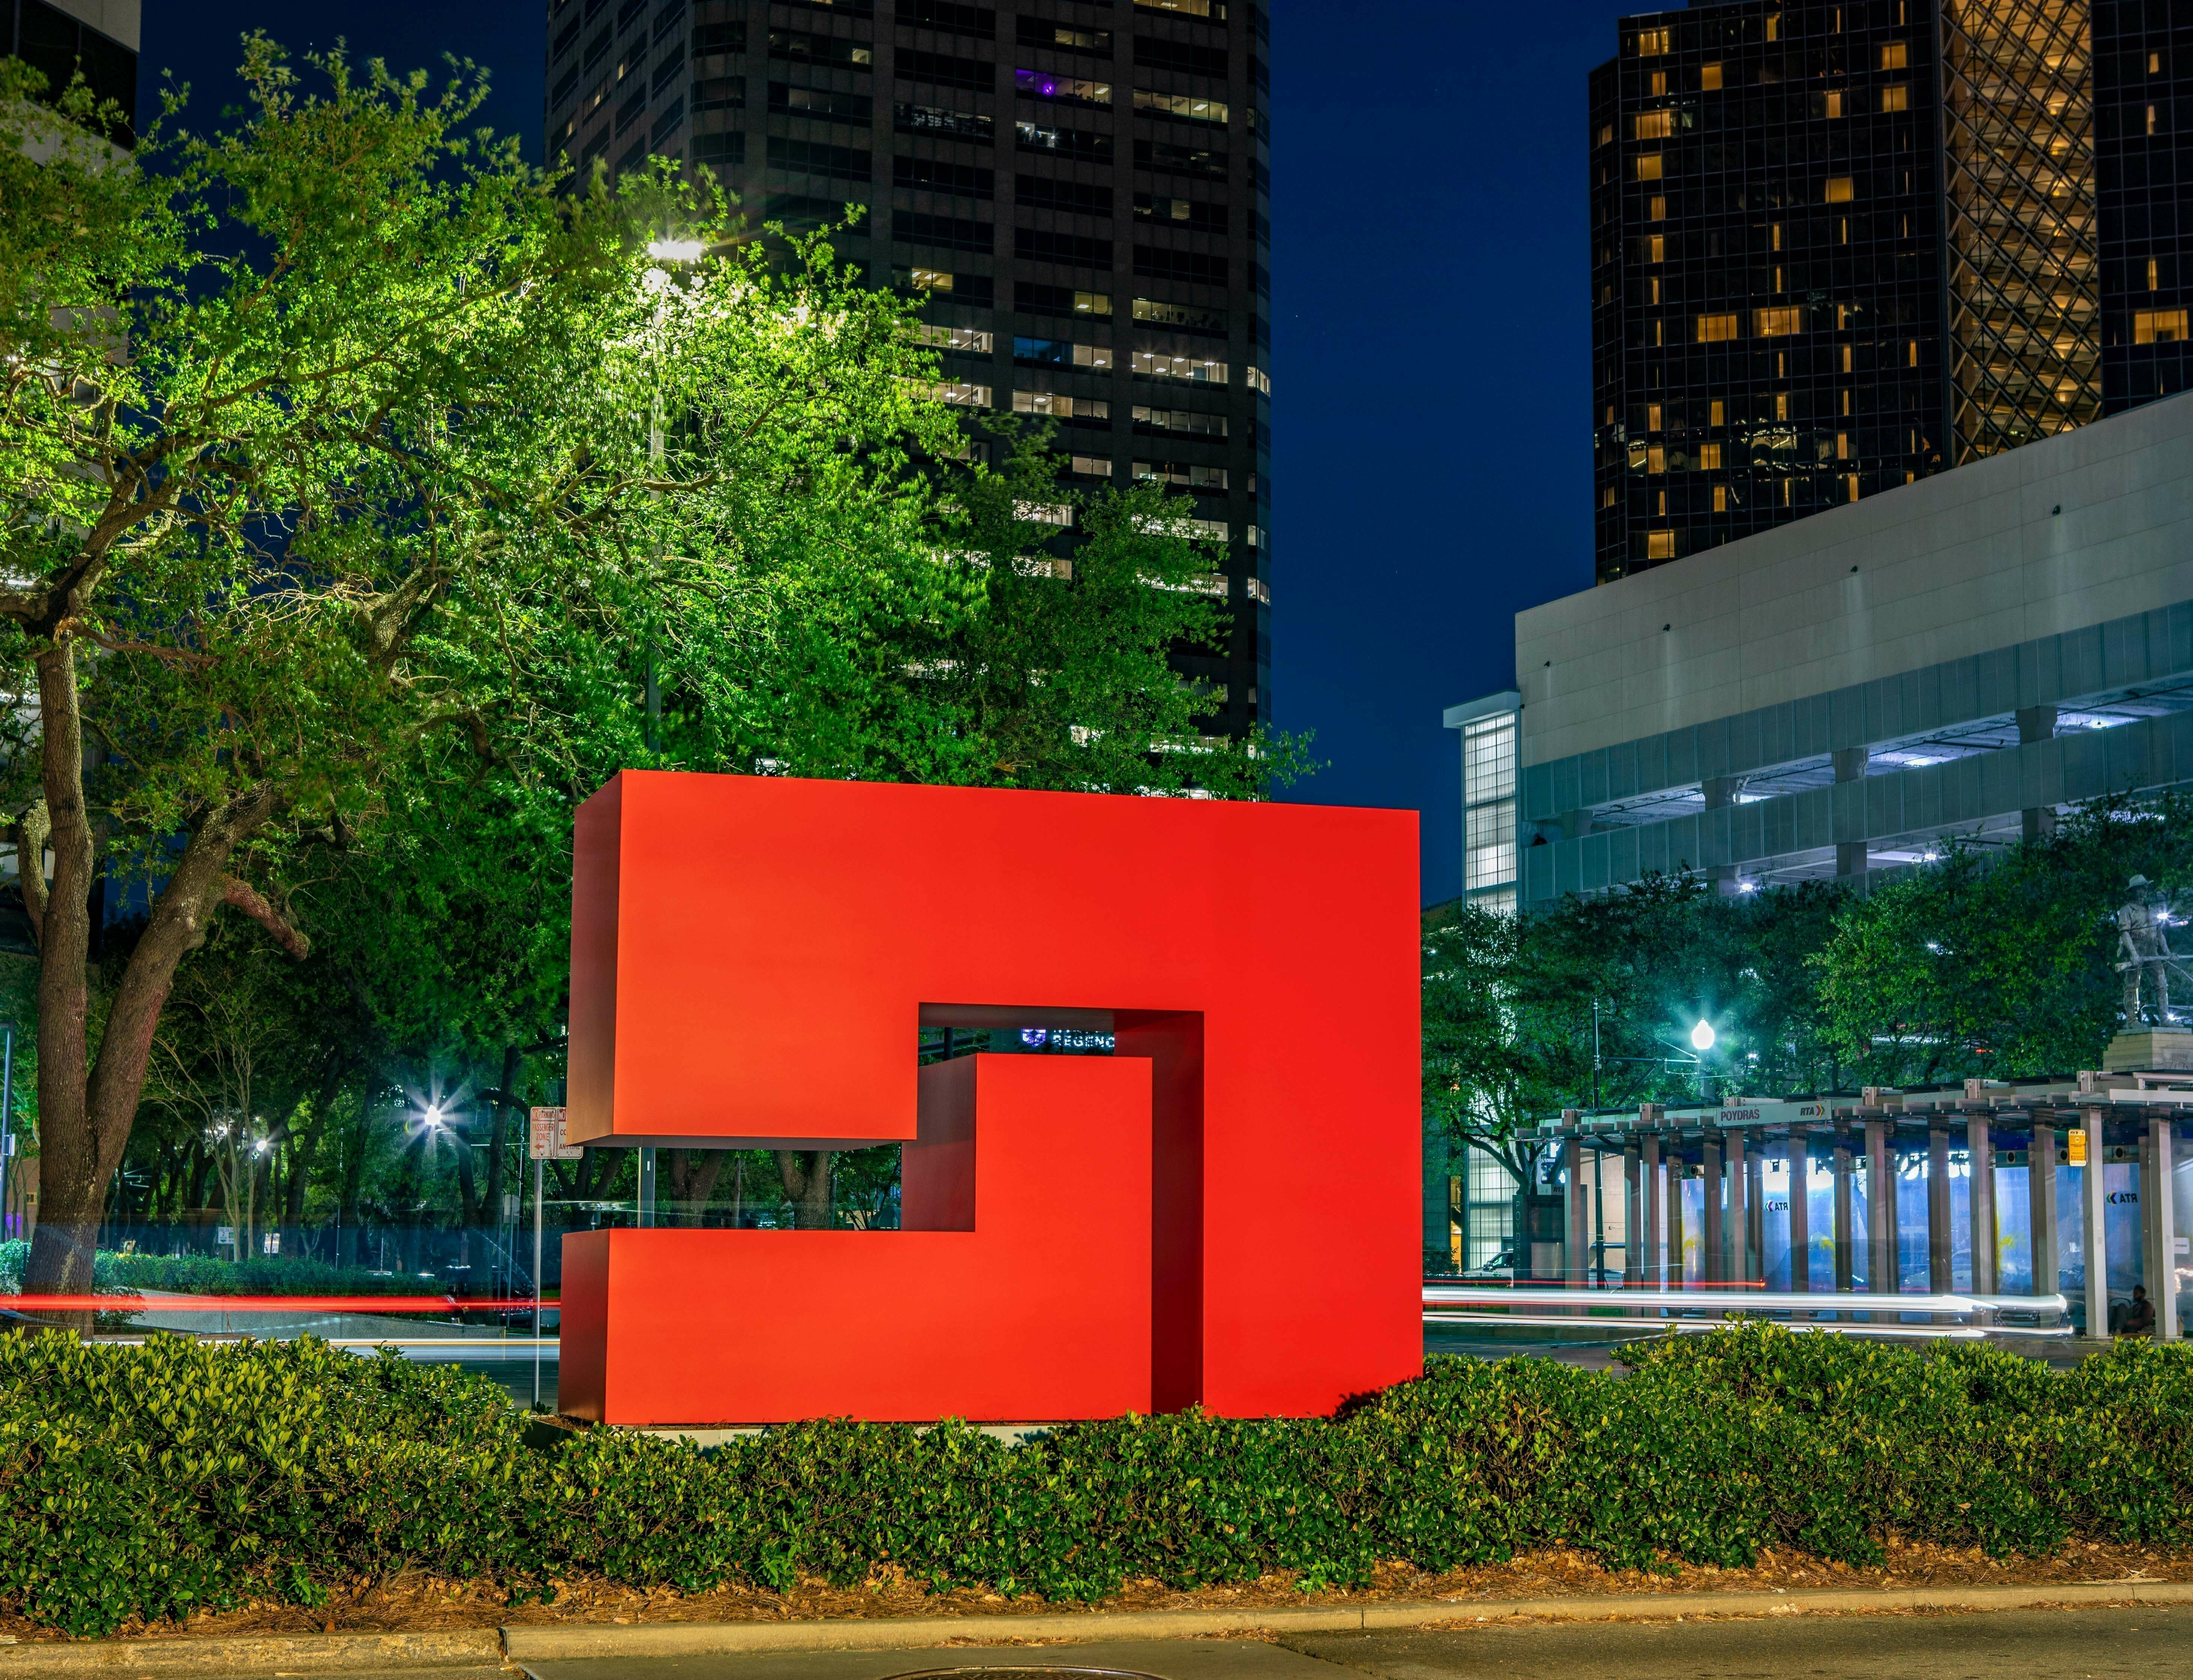 Carmen Herrera's 'Untitled Estructura (Red)' on view in New Orleans